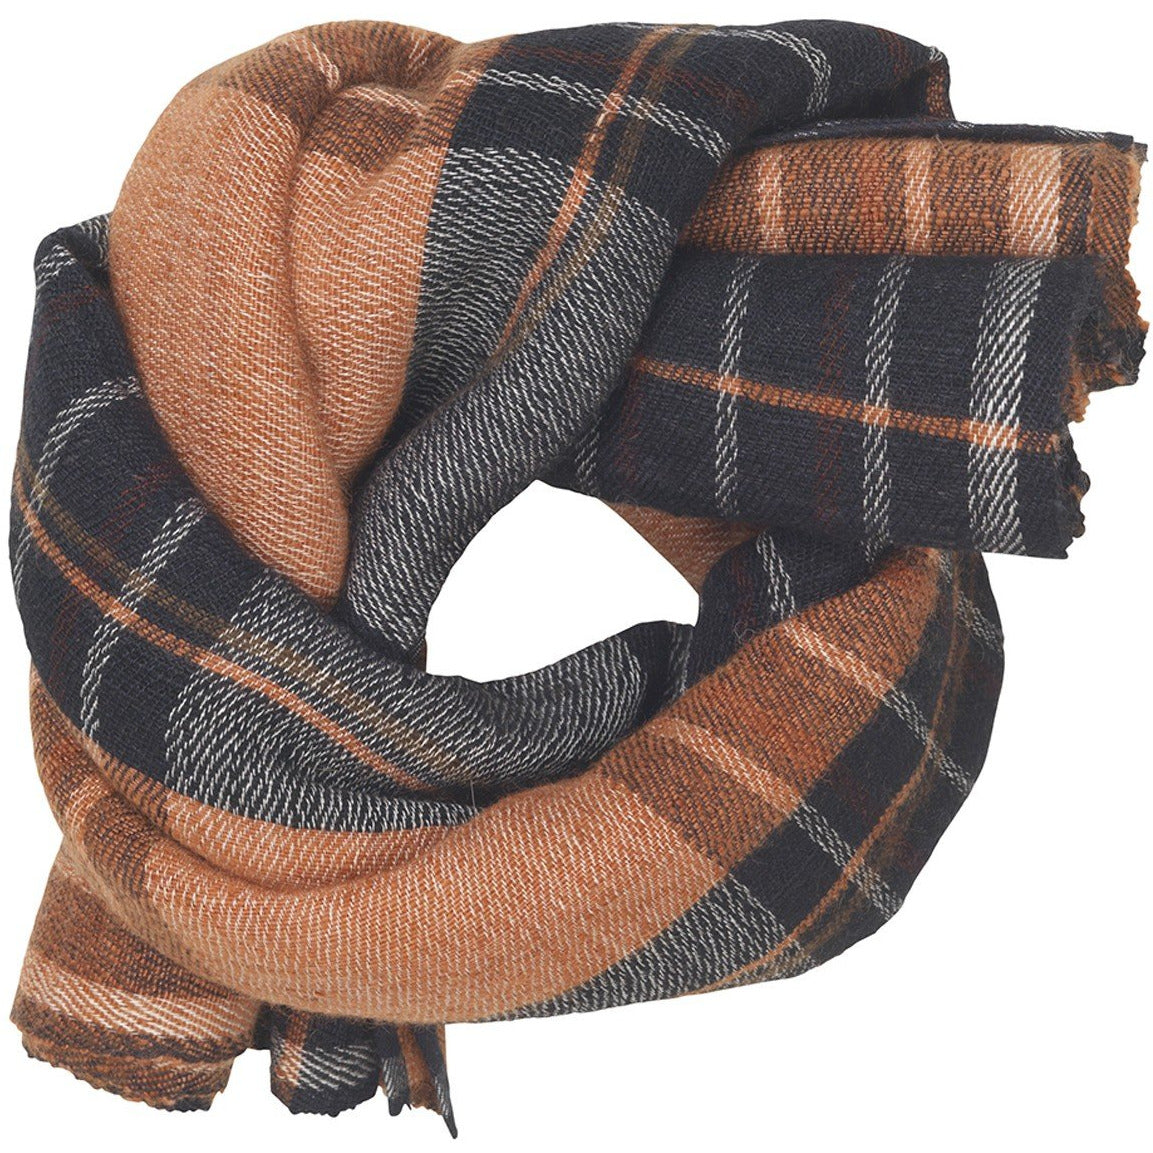 cashmere scarf in rust, orange, and black plaid pattern by designer aiayu